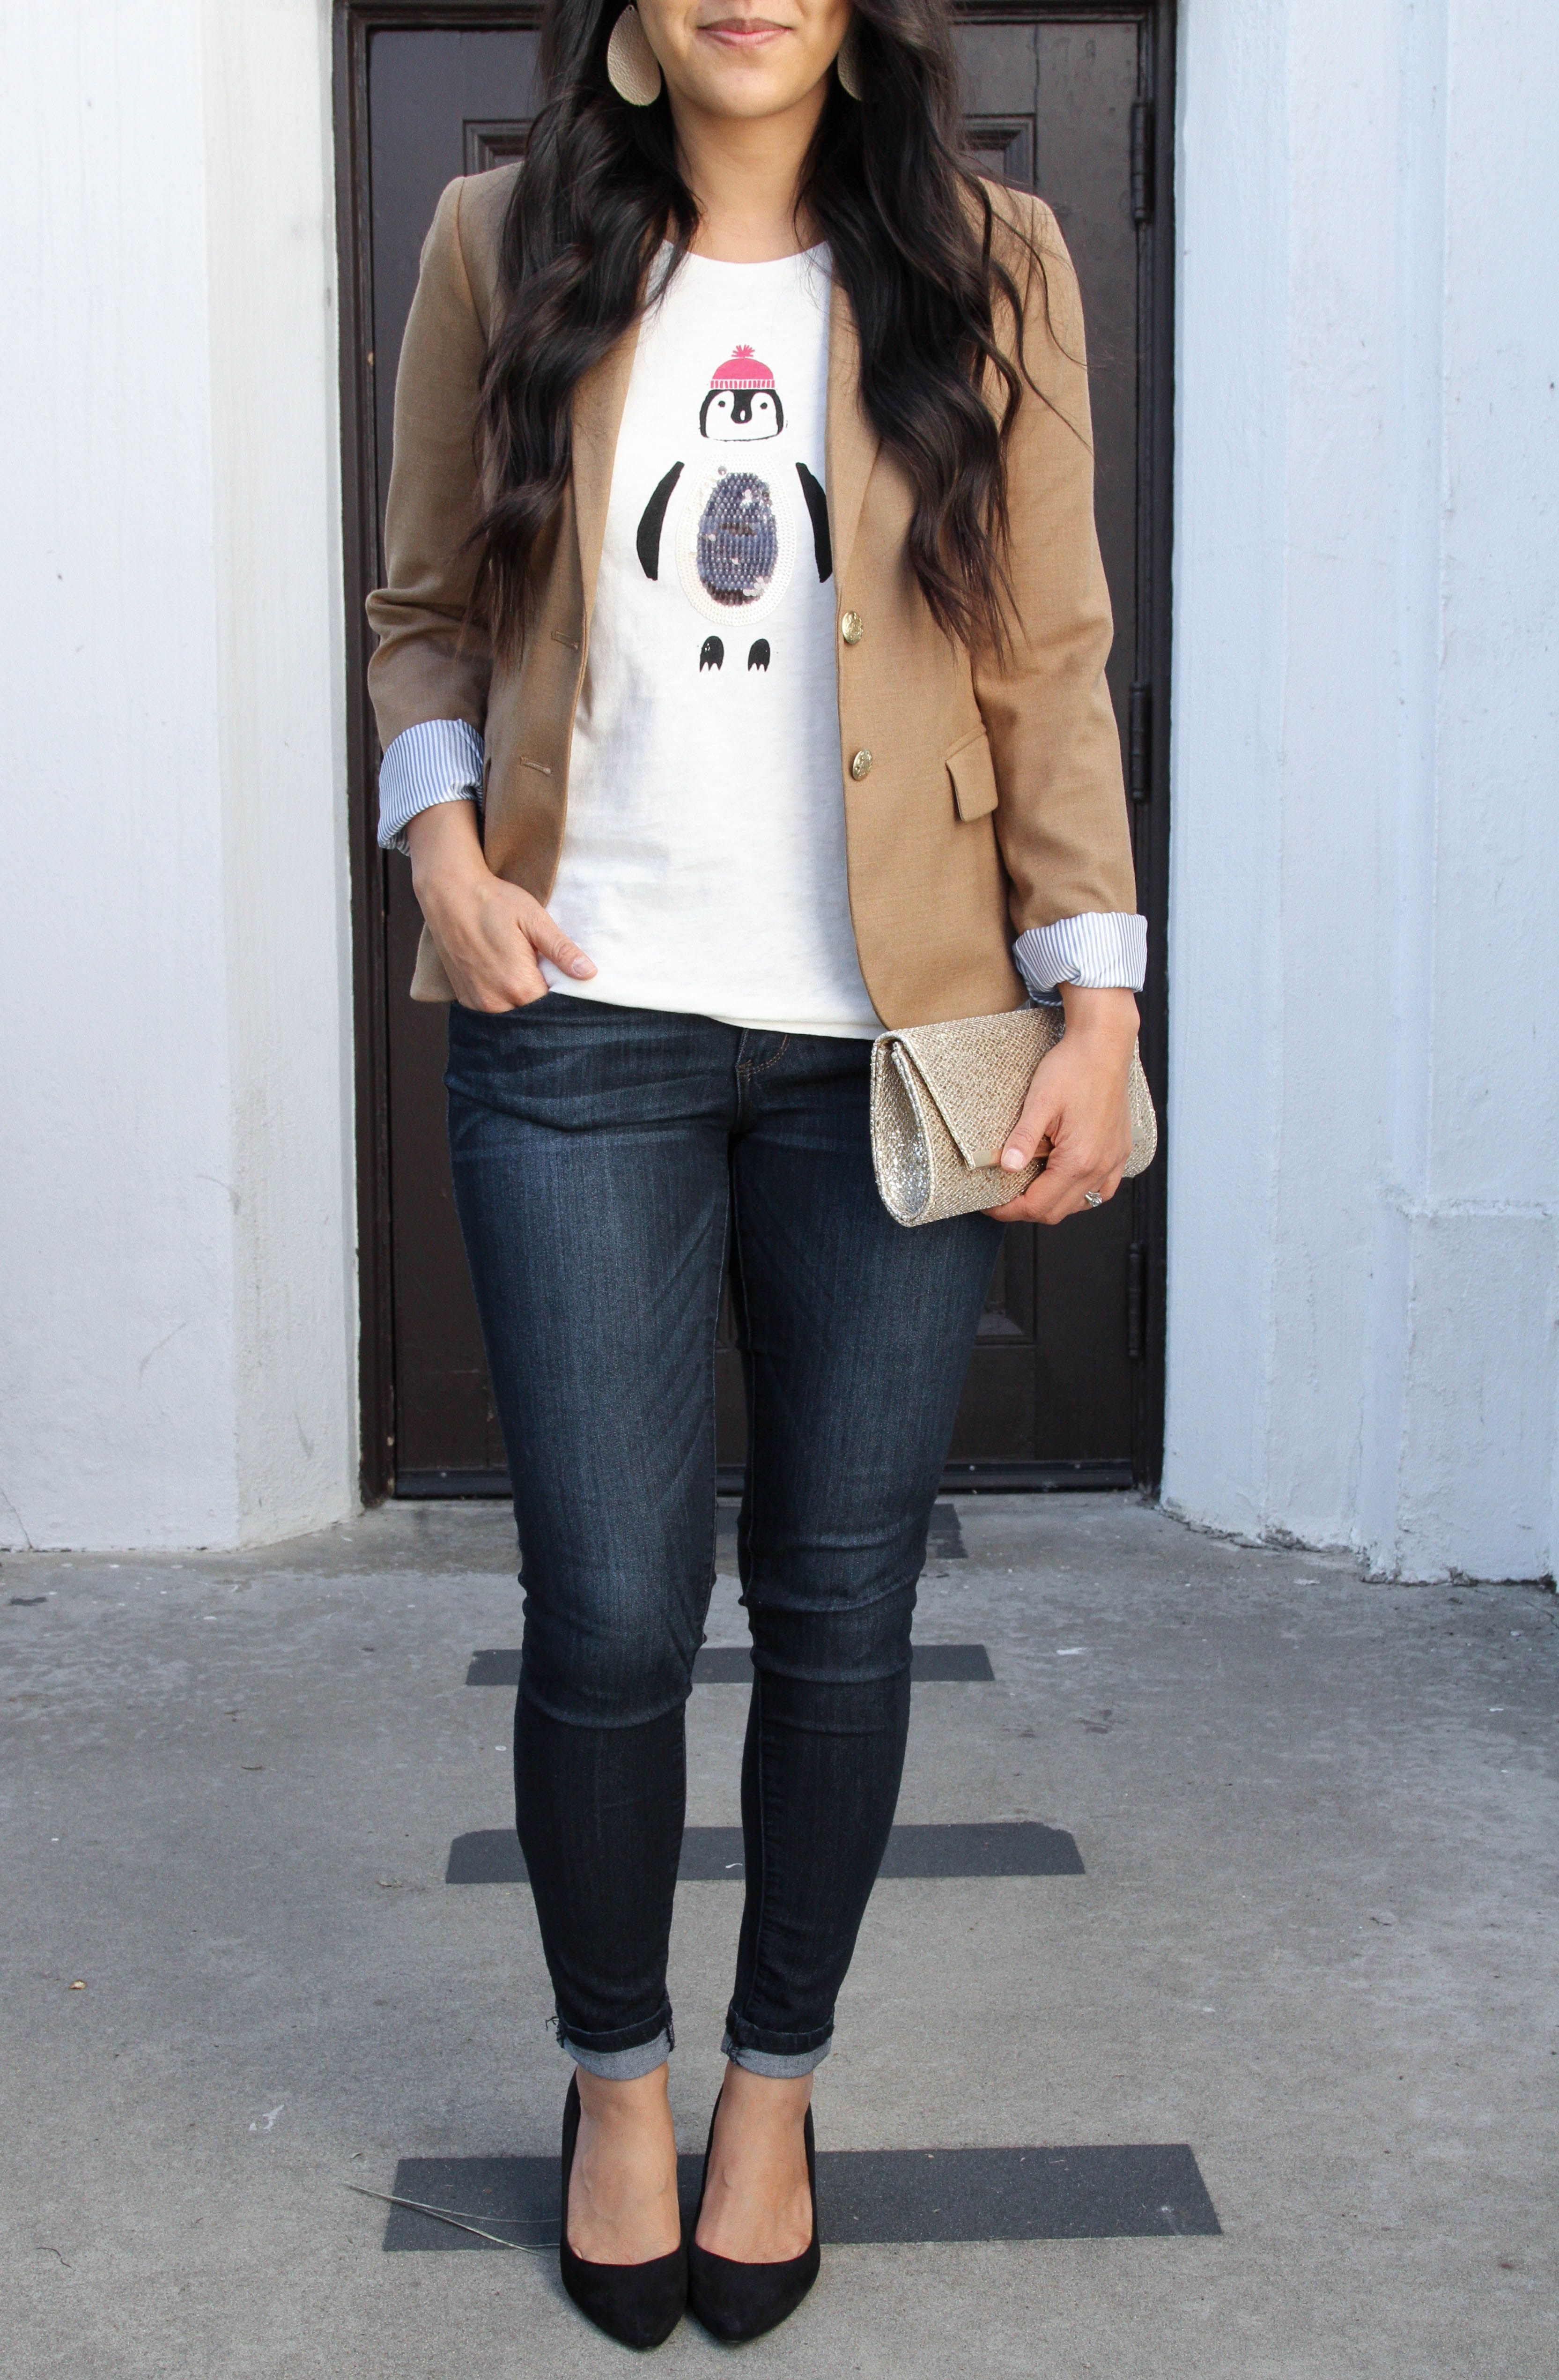 dedfba0328c Dressy Casual Holiday Outfit Ideas  Tan Blazer + Graphic Tee + Skinnies +  Black Pumps + Clutch